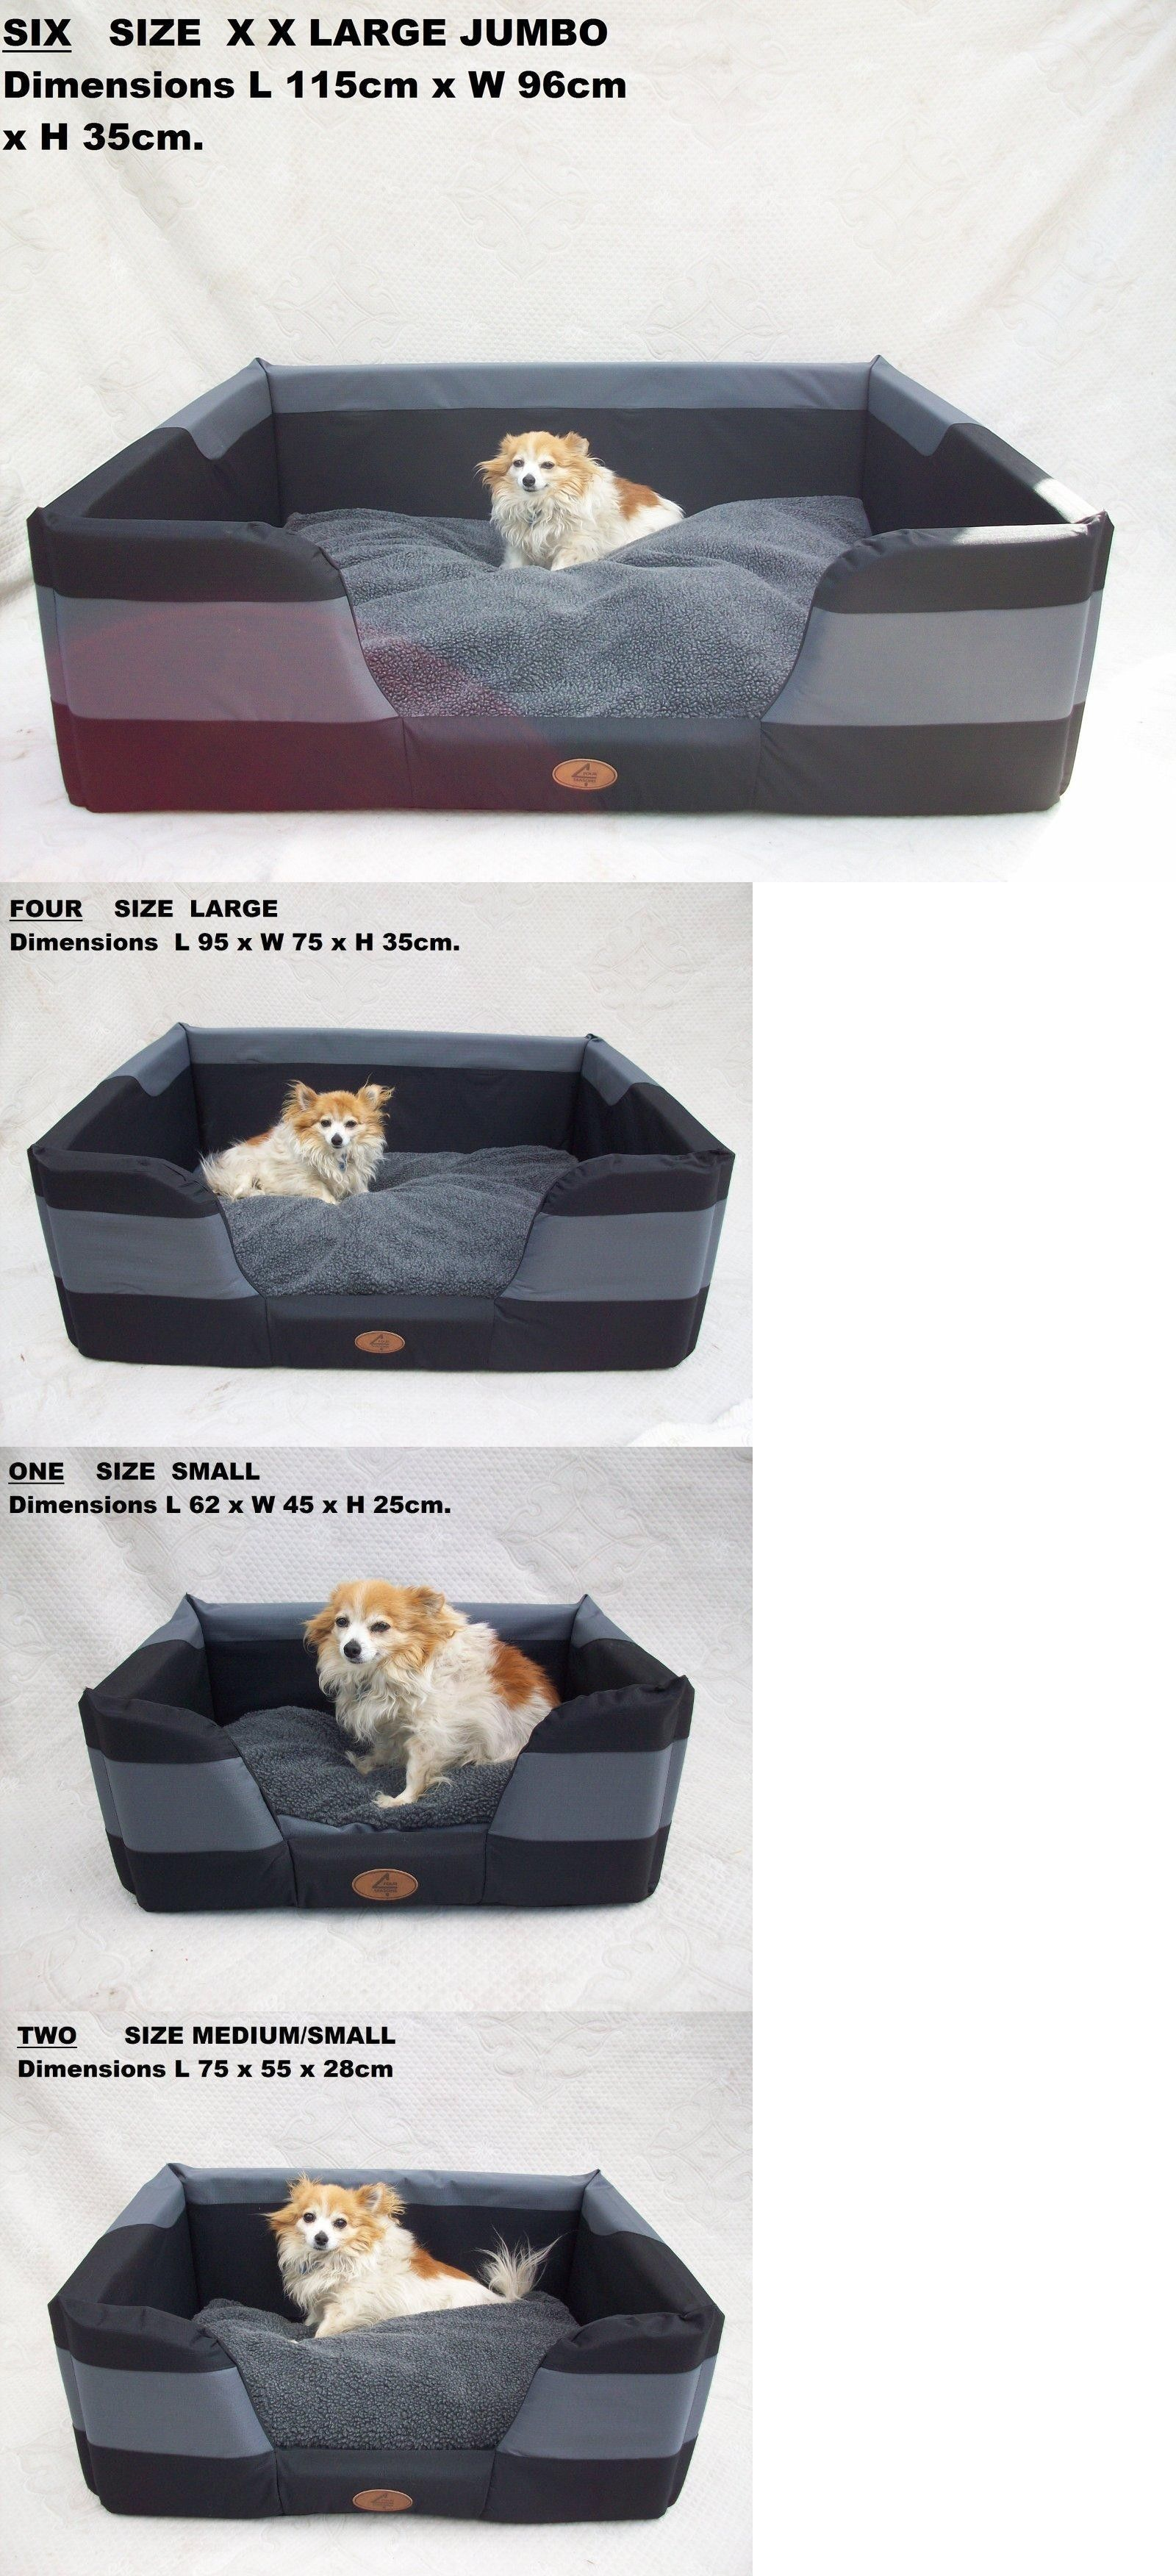 bed rails 162183 dog bed xx lrg six sizes s to extra large xxl